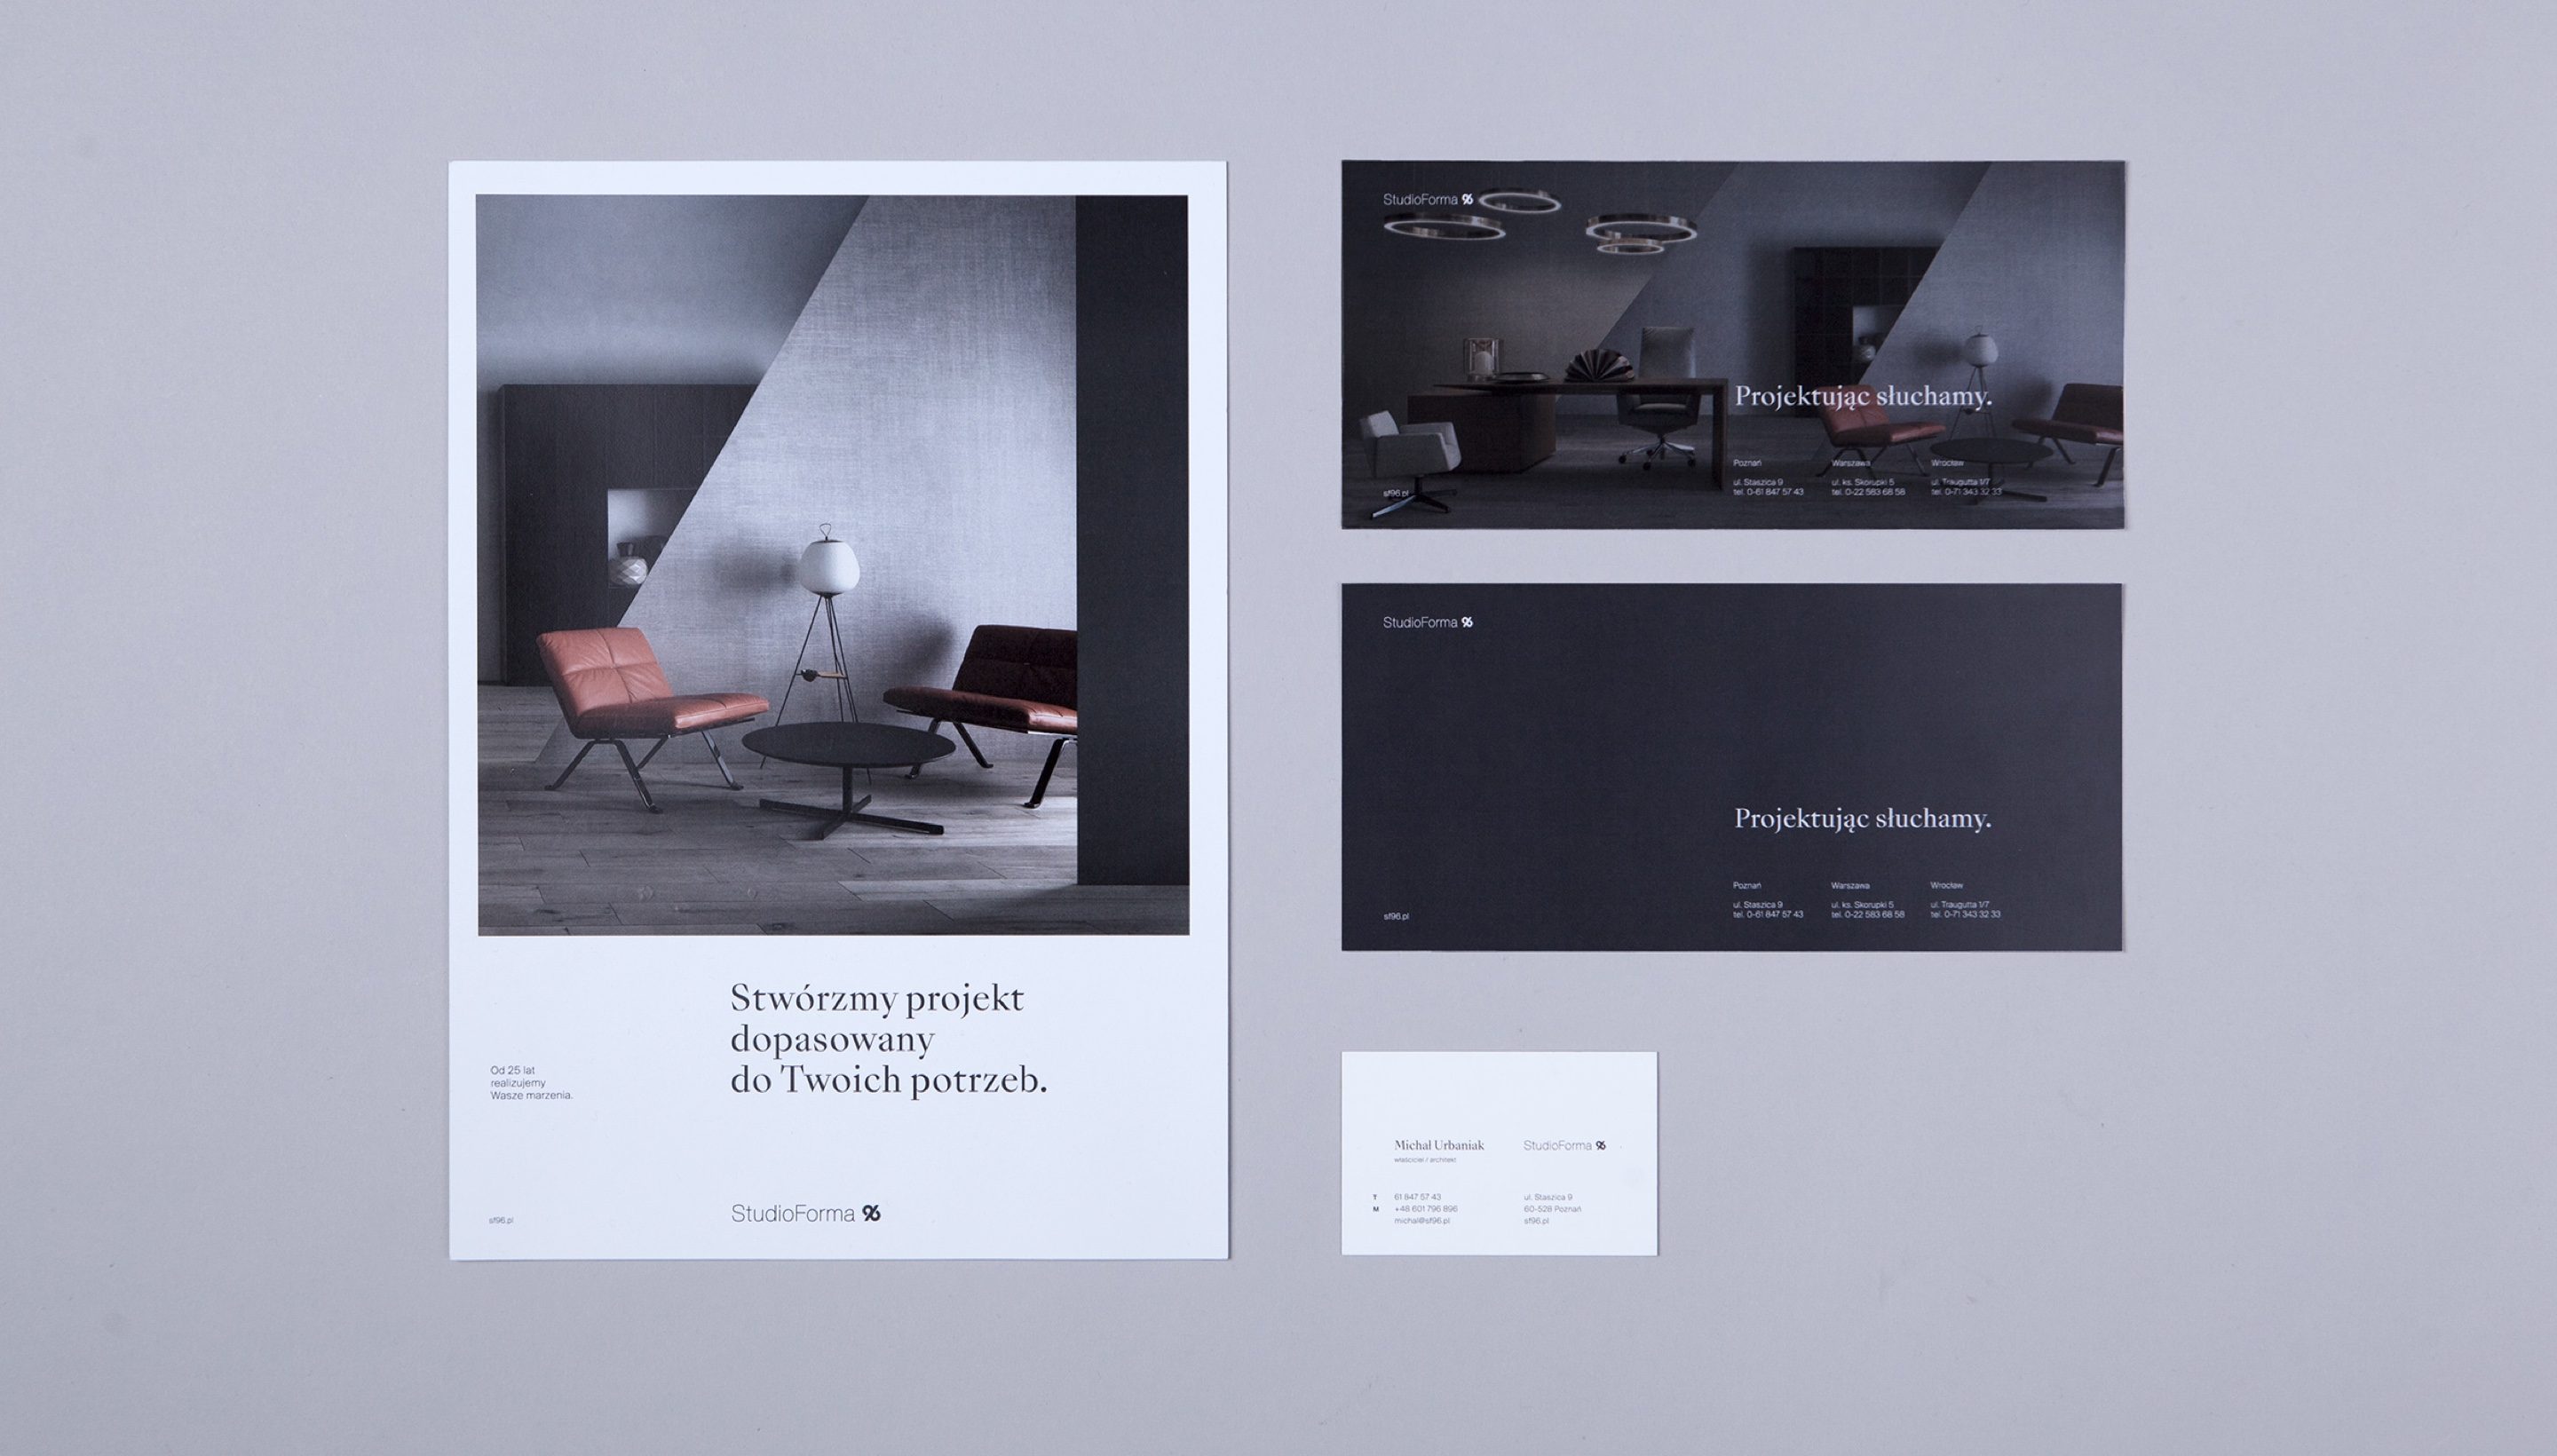 Identity design - StudioForma 96 by Uniforma